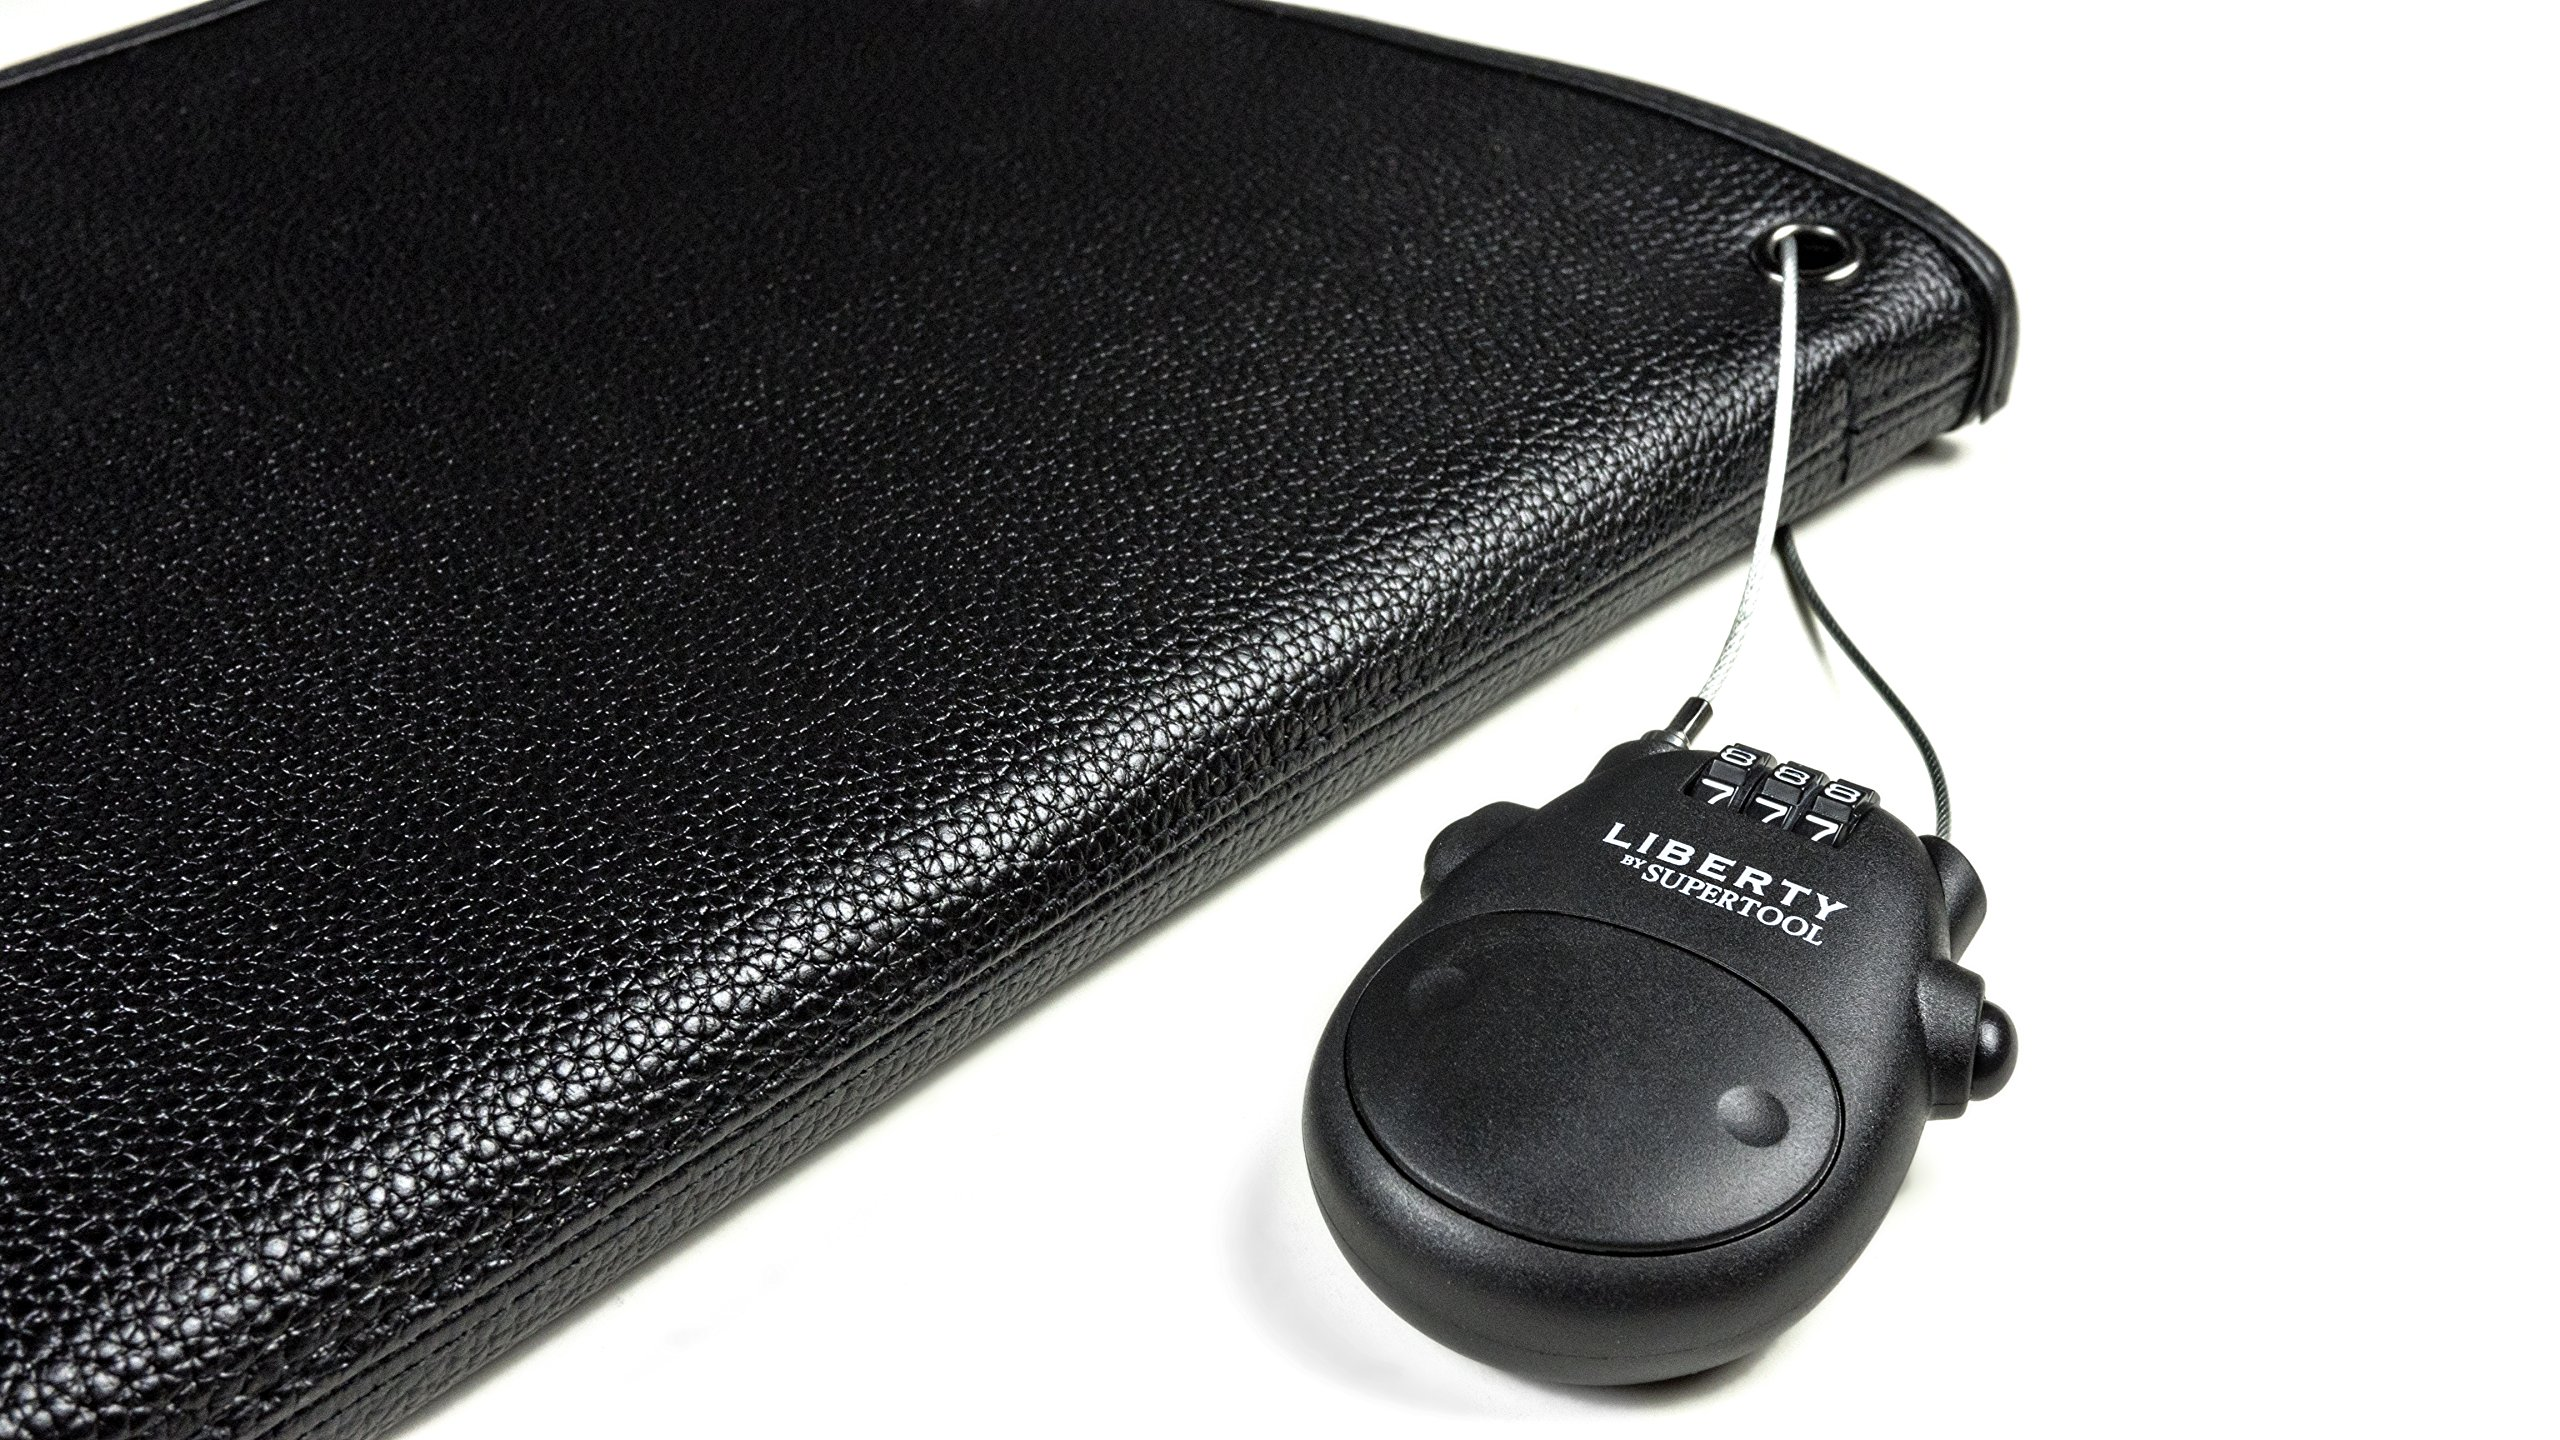 Liberty Safe Retractable Cable Lock, (Travel, Desk, Vehicle, Handgun Case, and More) by Liberty Safe (Image #1)